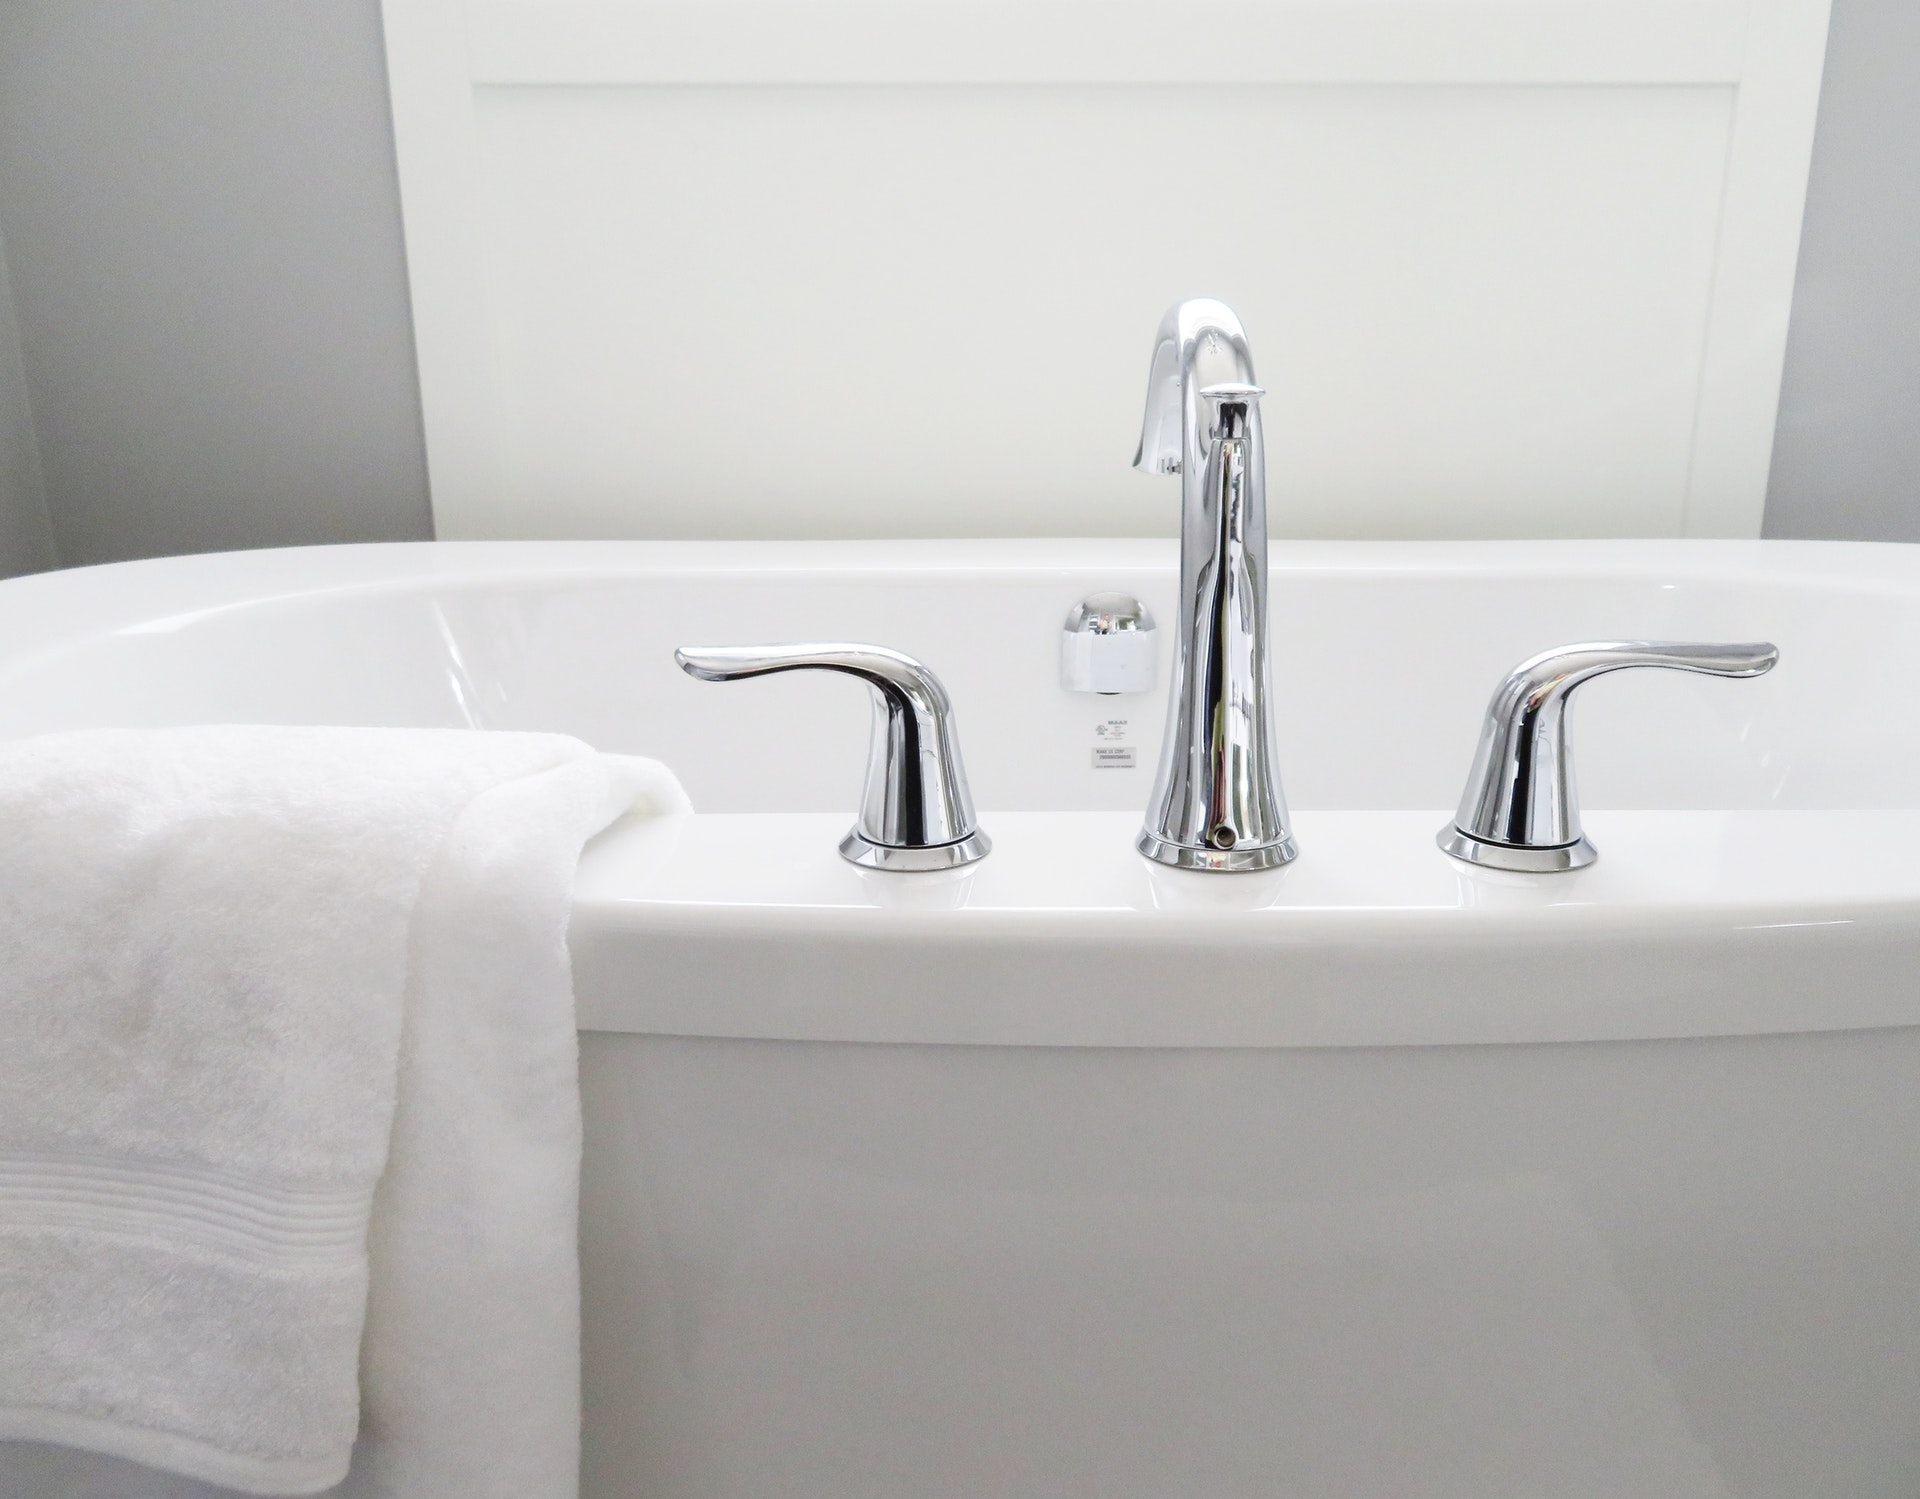 Manchester Bathroom Designers, Fitters & Plumbers